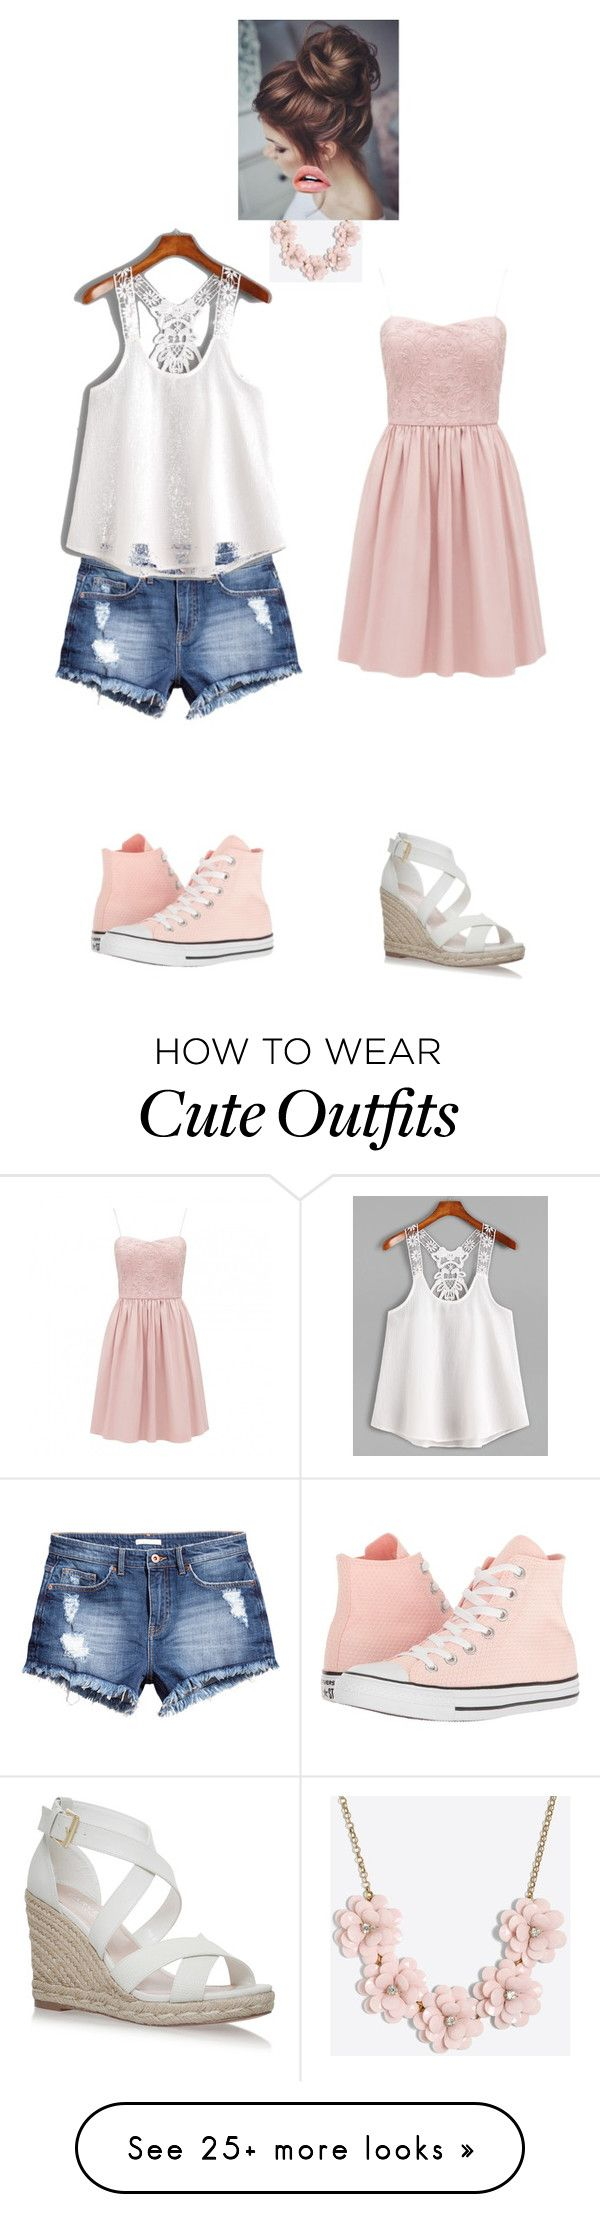 """""""Casual or Cute Peach Outfits"""" by alissanc2002 on Polyvore featuring J.Crew, Converse, H&M, cute, Pink, pretty, peach and casualoutfit"""